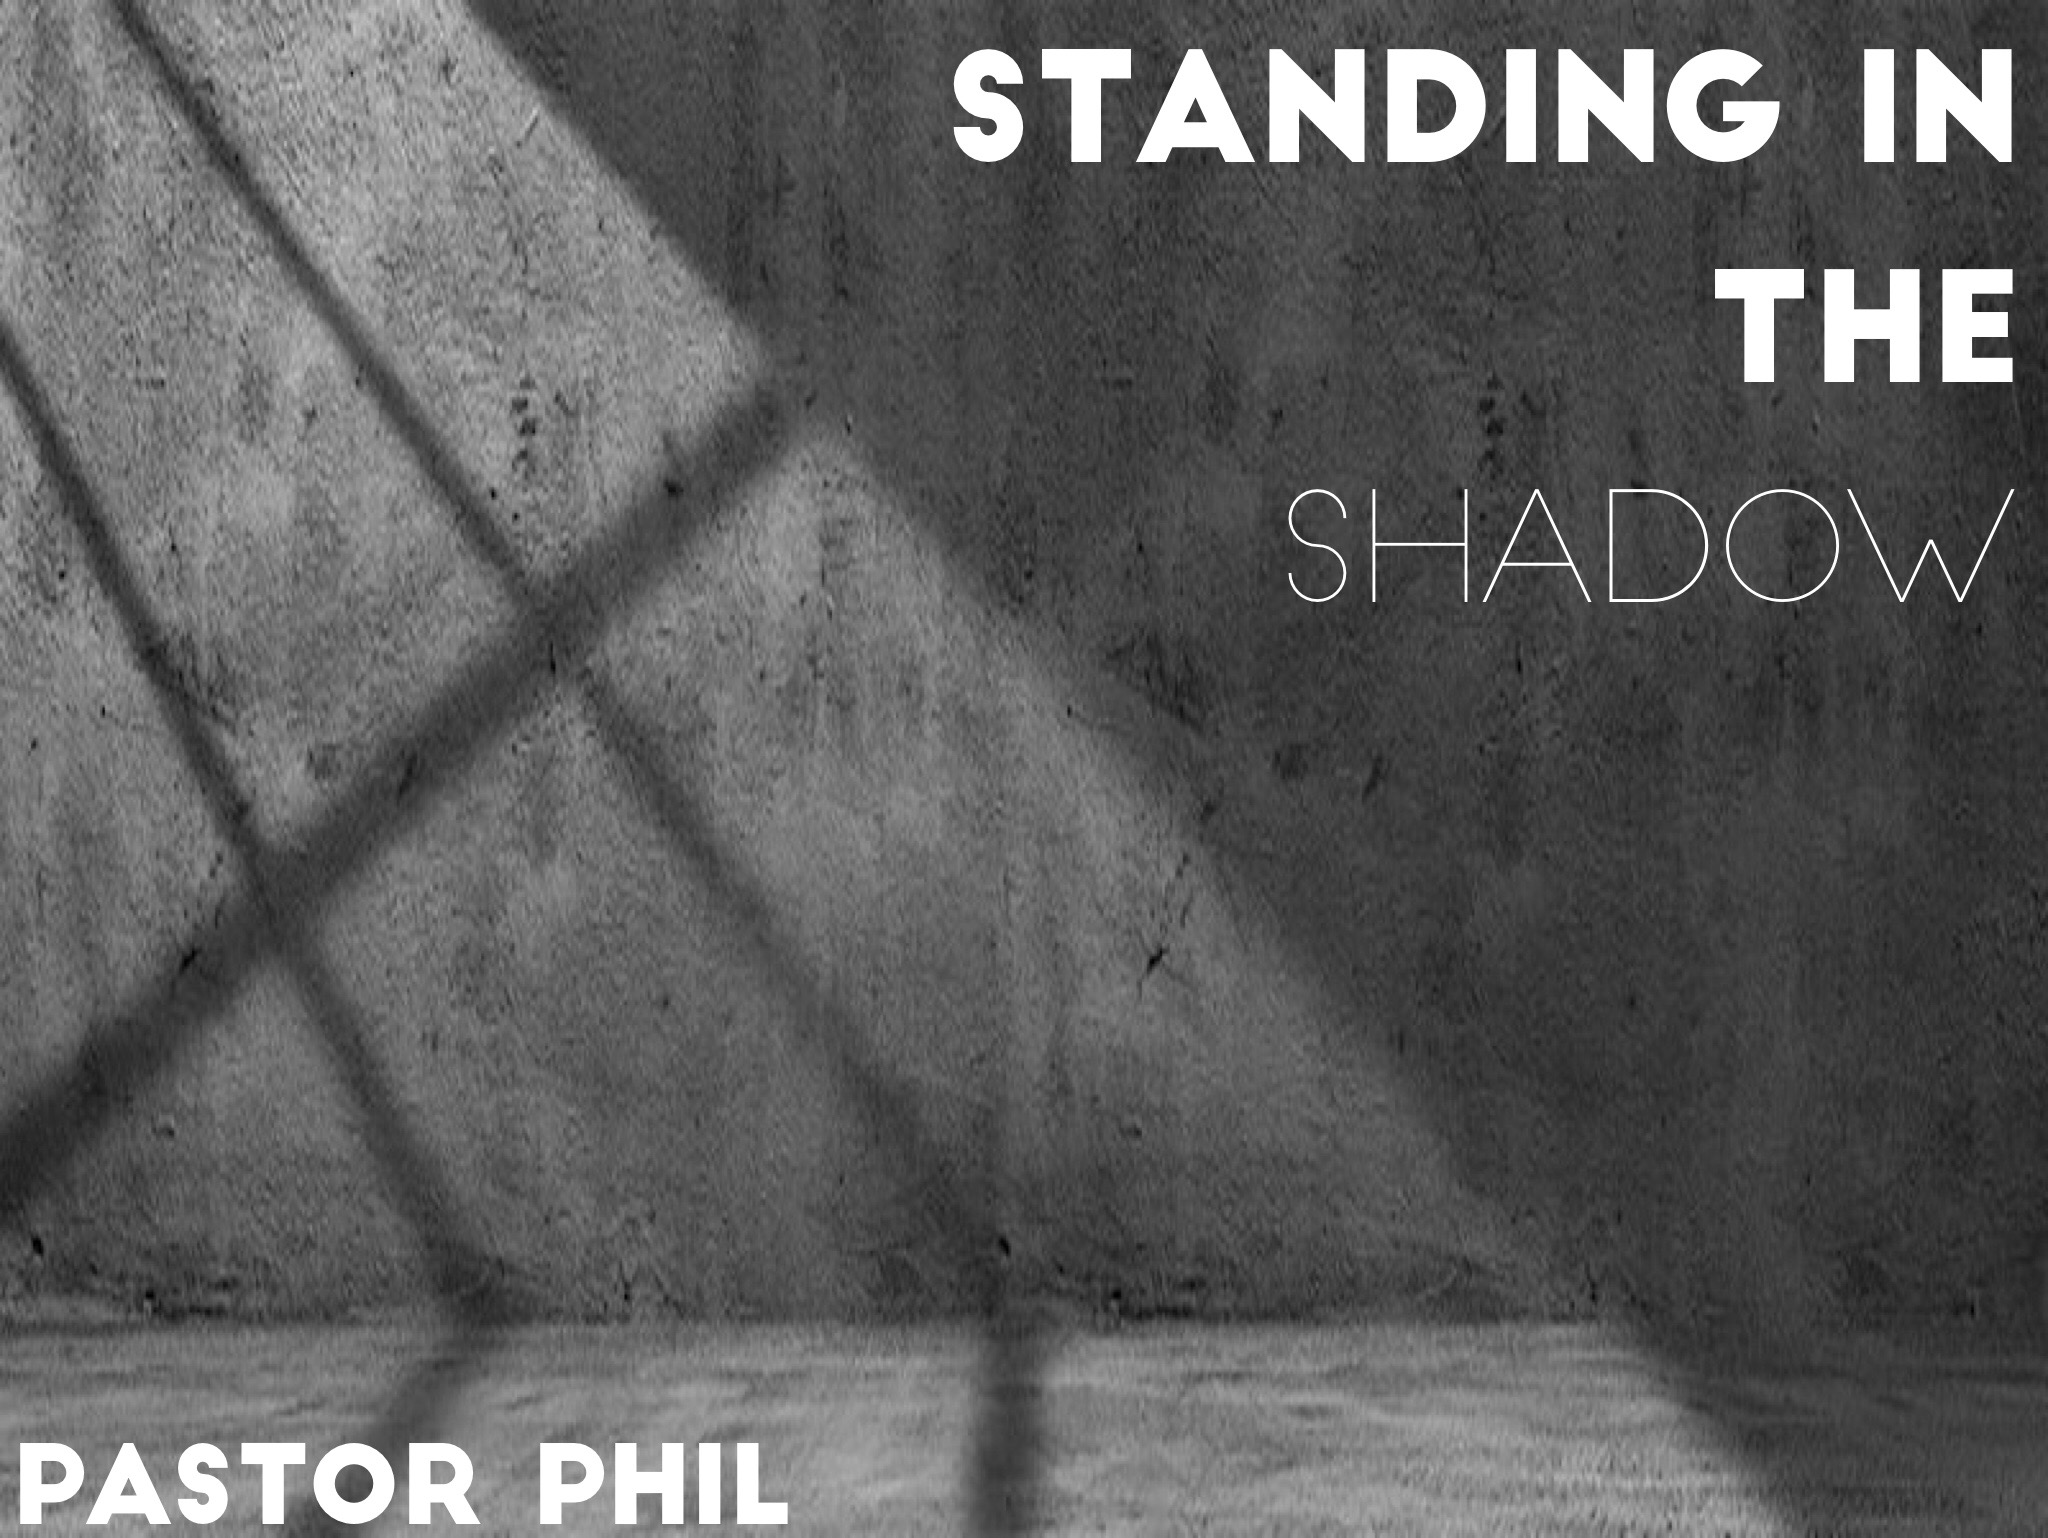 Standing in the Shadow